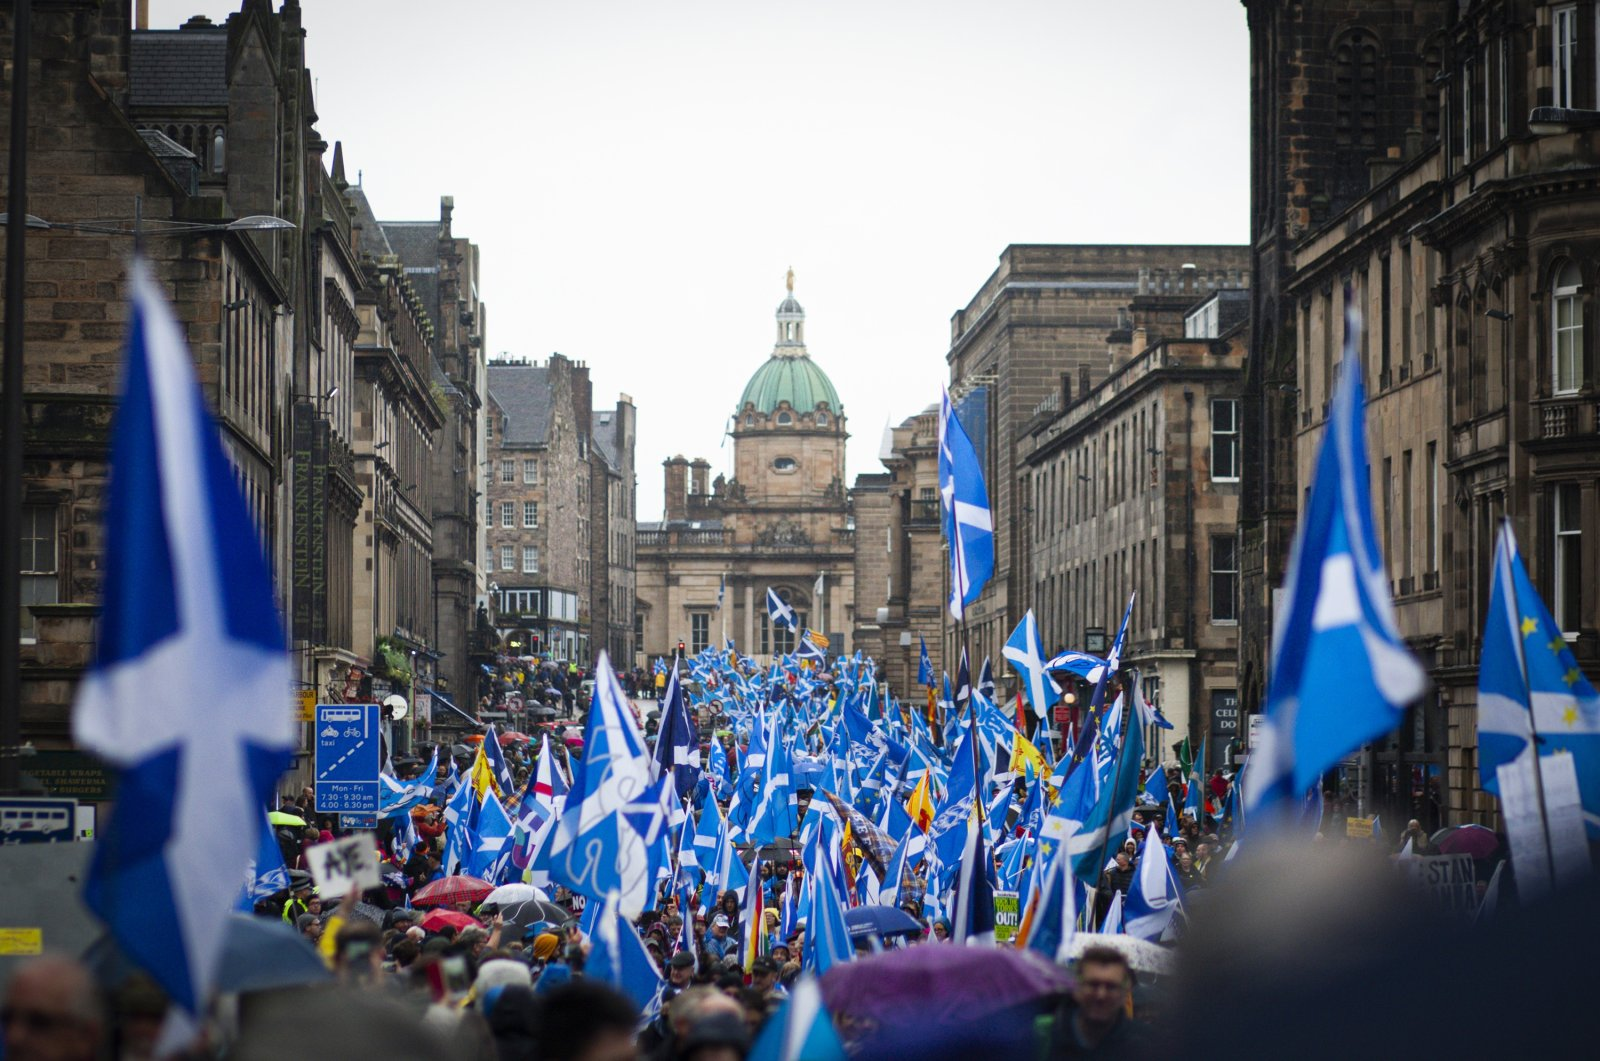 Pro-Scottish independence supporters march from Holyrood Park though the city center to The Meadows for an all under one banner (AUOB) march on October 5, 2019 in Edinburgh, Scotland. (Getty Images)